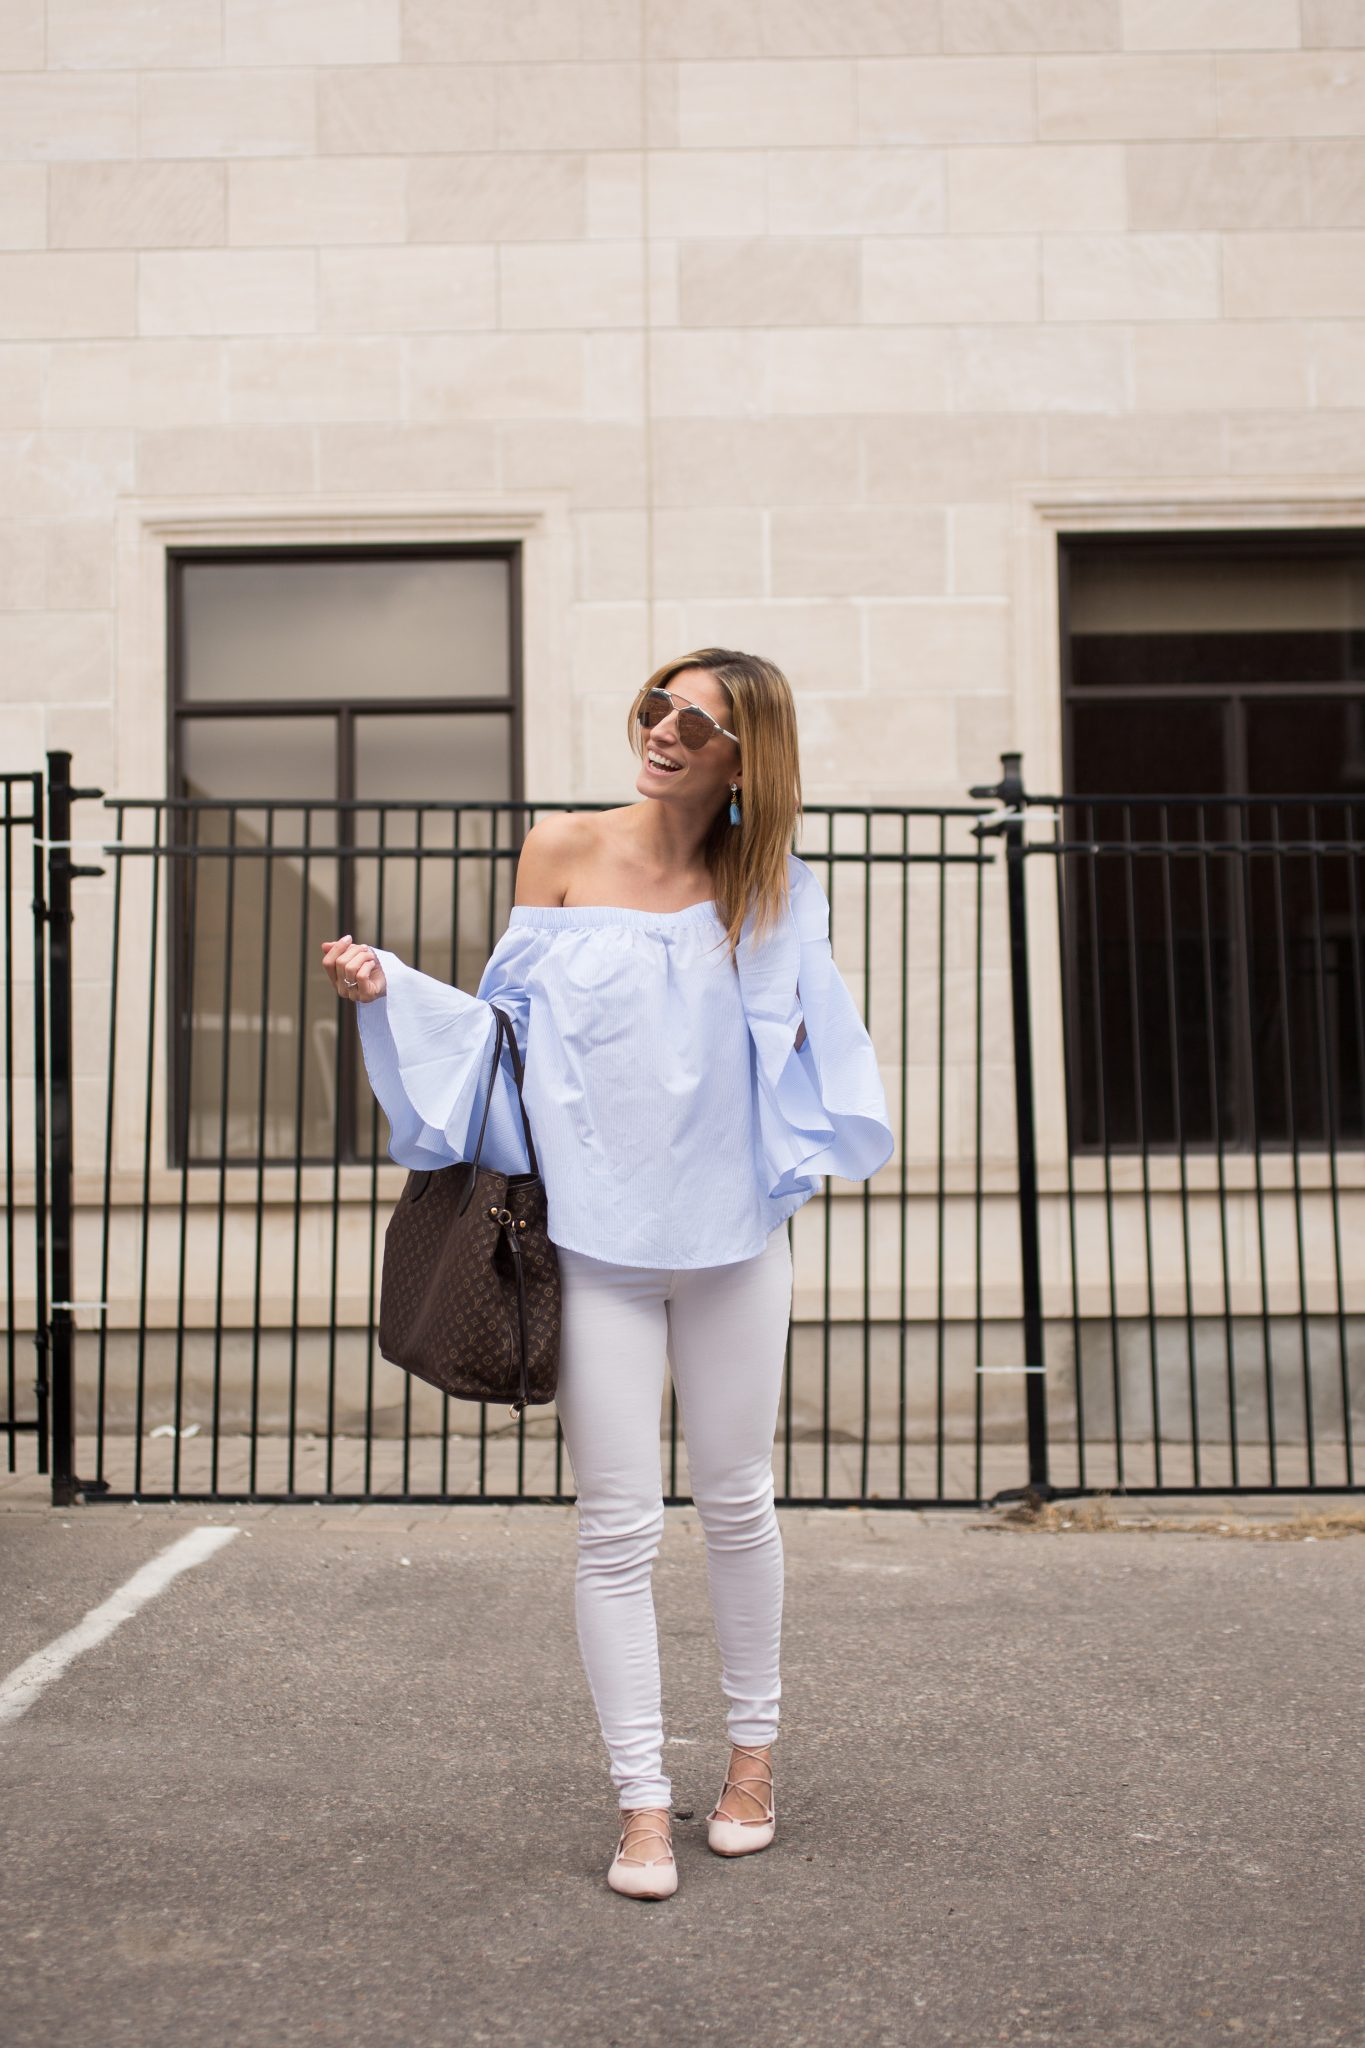 sparkleshinylove off the should pinstripe bell sleeve top Forever 21, White jeans by 7 for All Mankind Saks Off 5th, Louis Vuitton Neverfull, Dior So Real Sunglasses, pink pointed toe lace up shoes Walmart